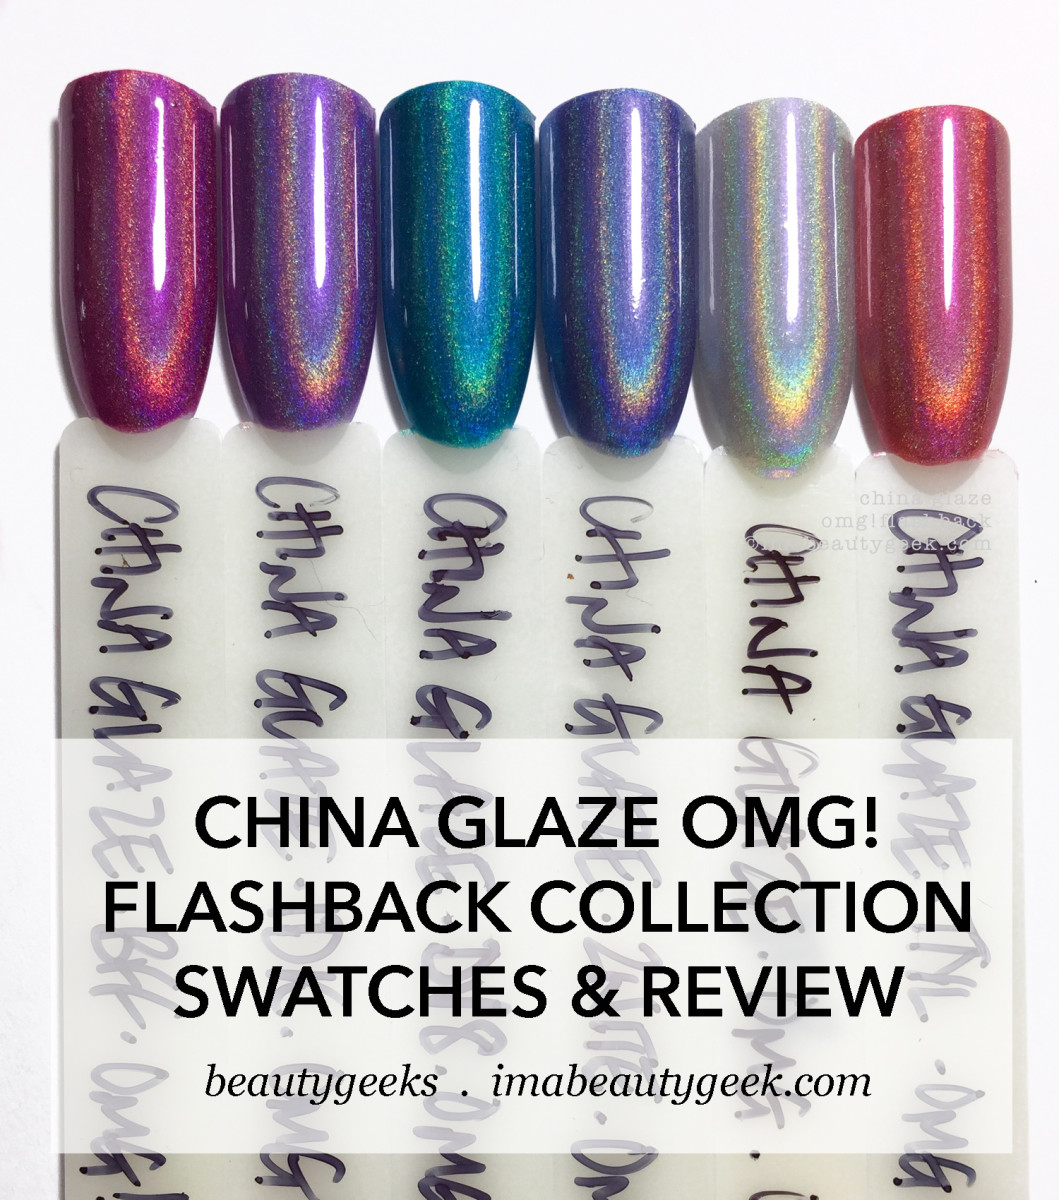 China Glaze OMG Flashback Collection Swatches Review 2018